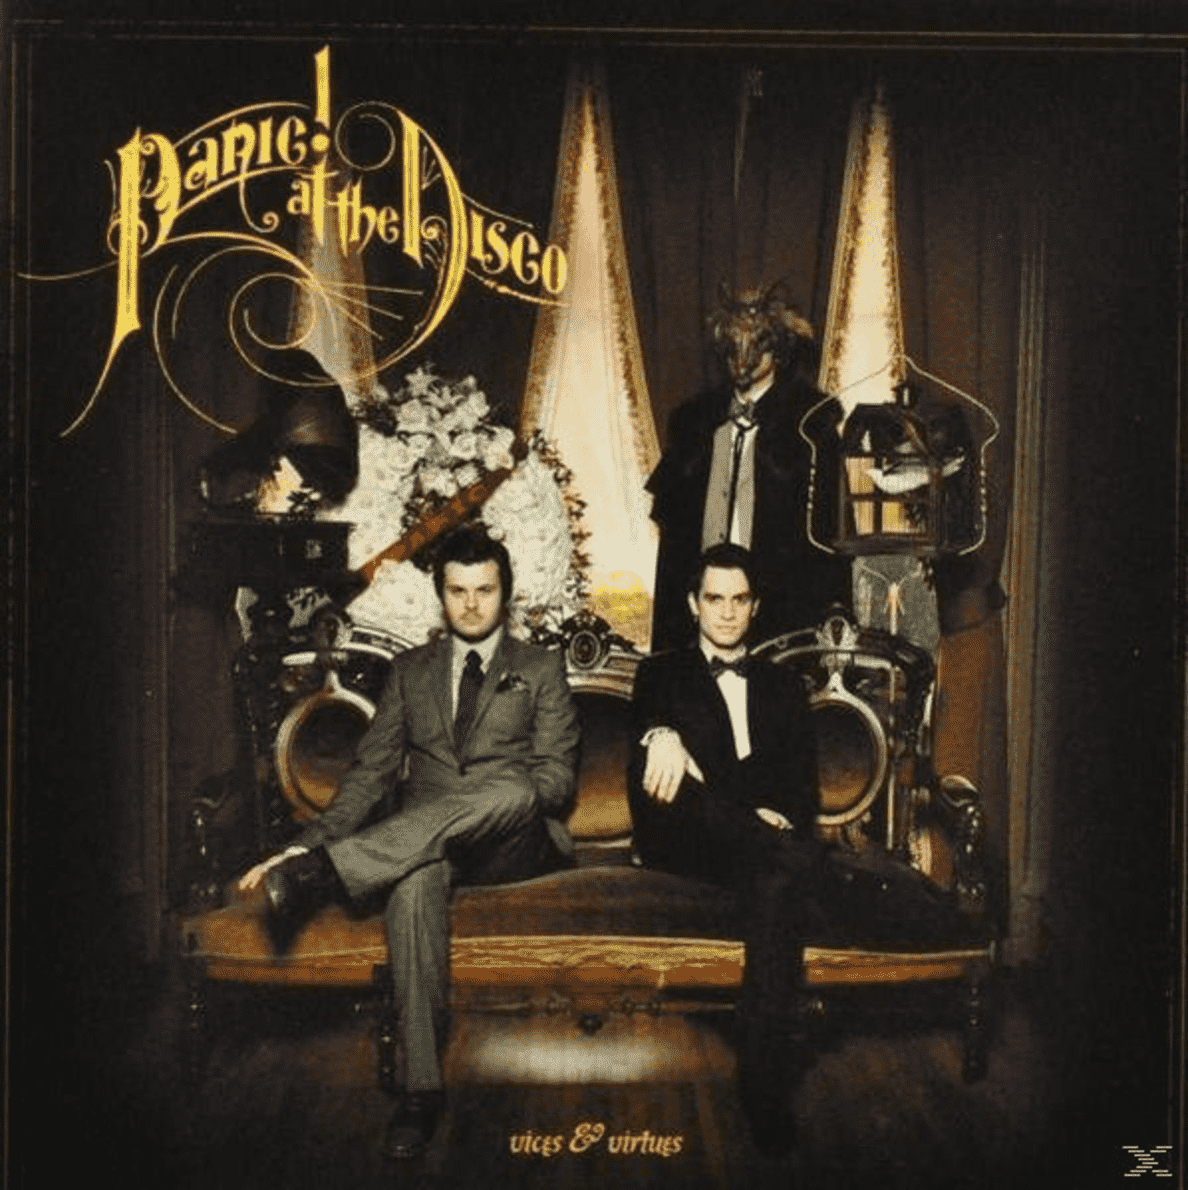 Vices & Virtues Panic! At The Disco auf CD